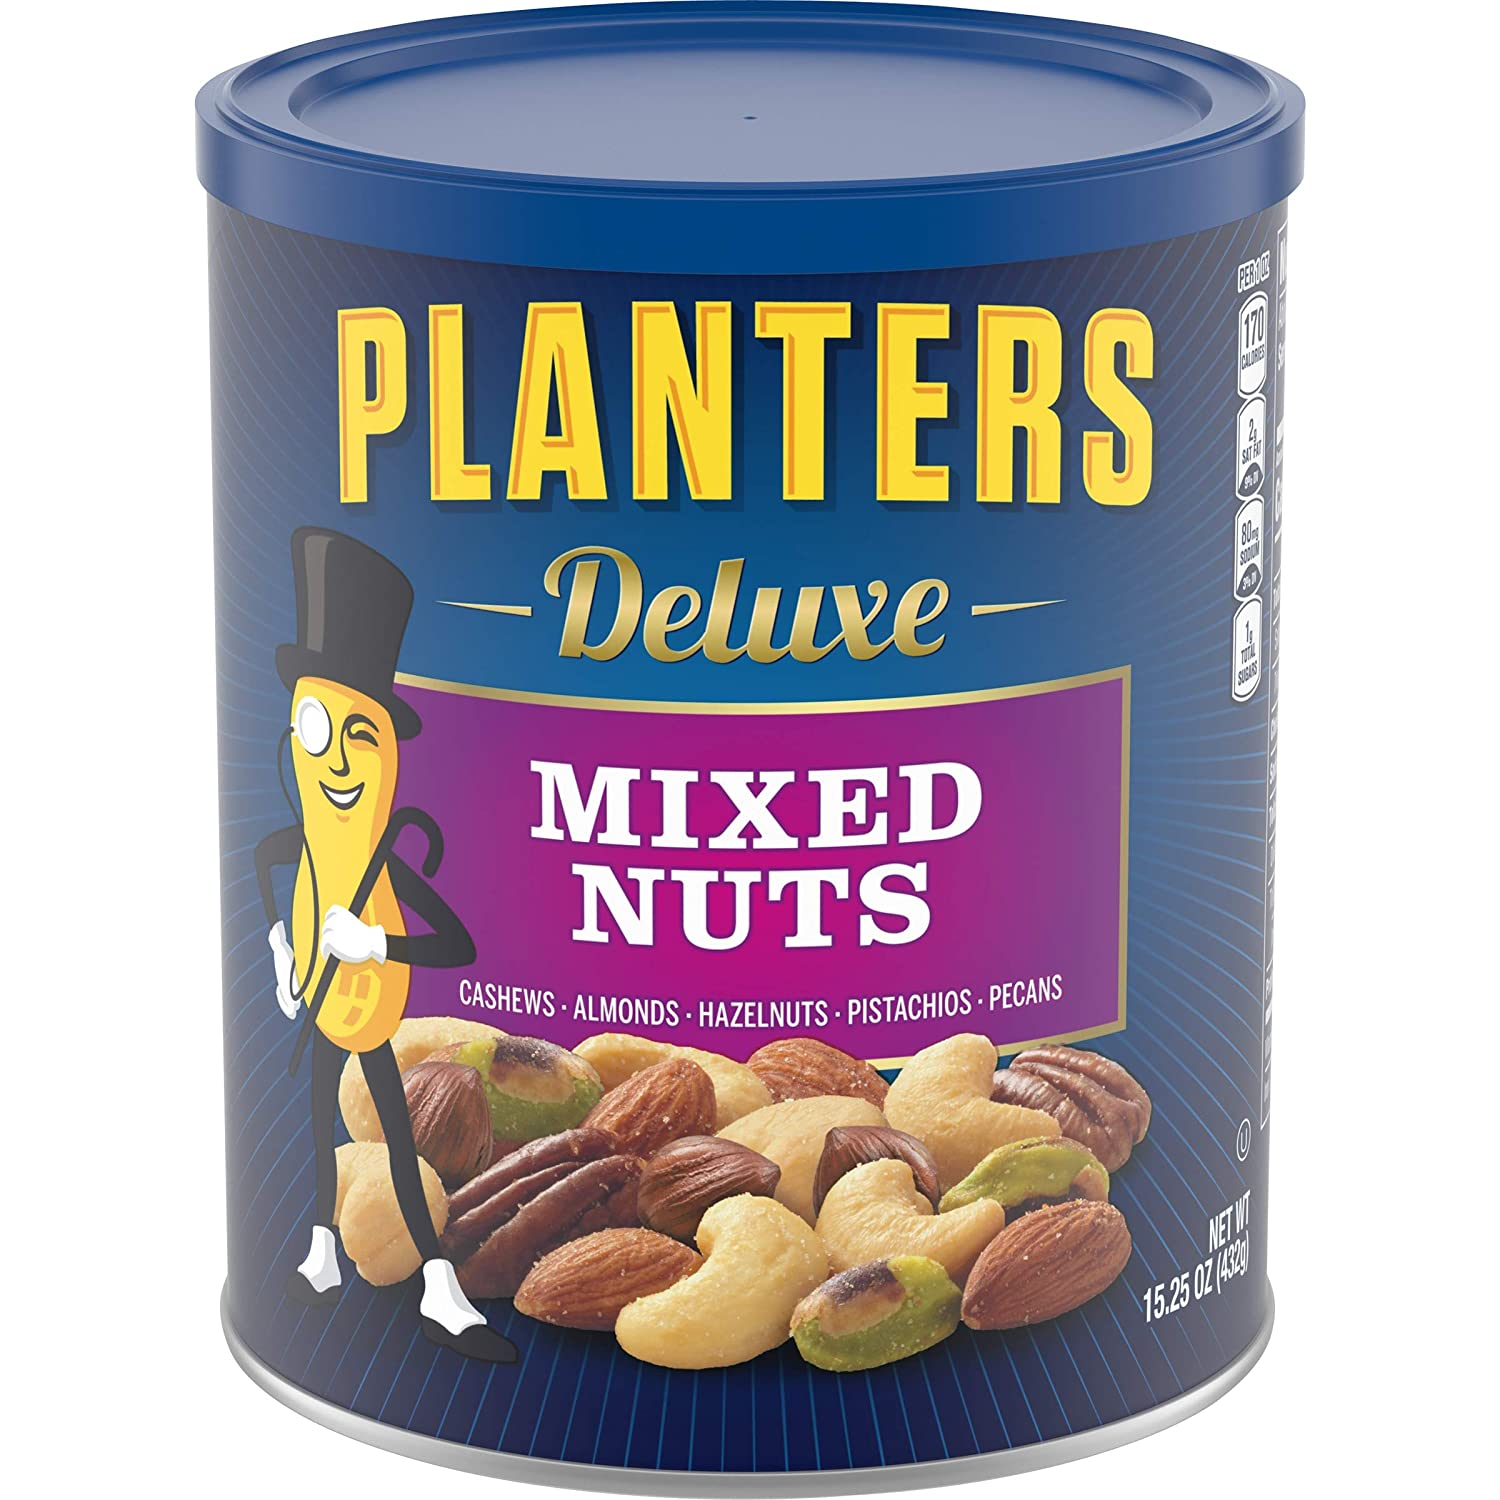 Planters Deluxe Nut Mix